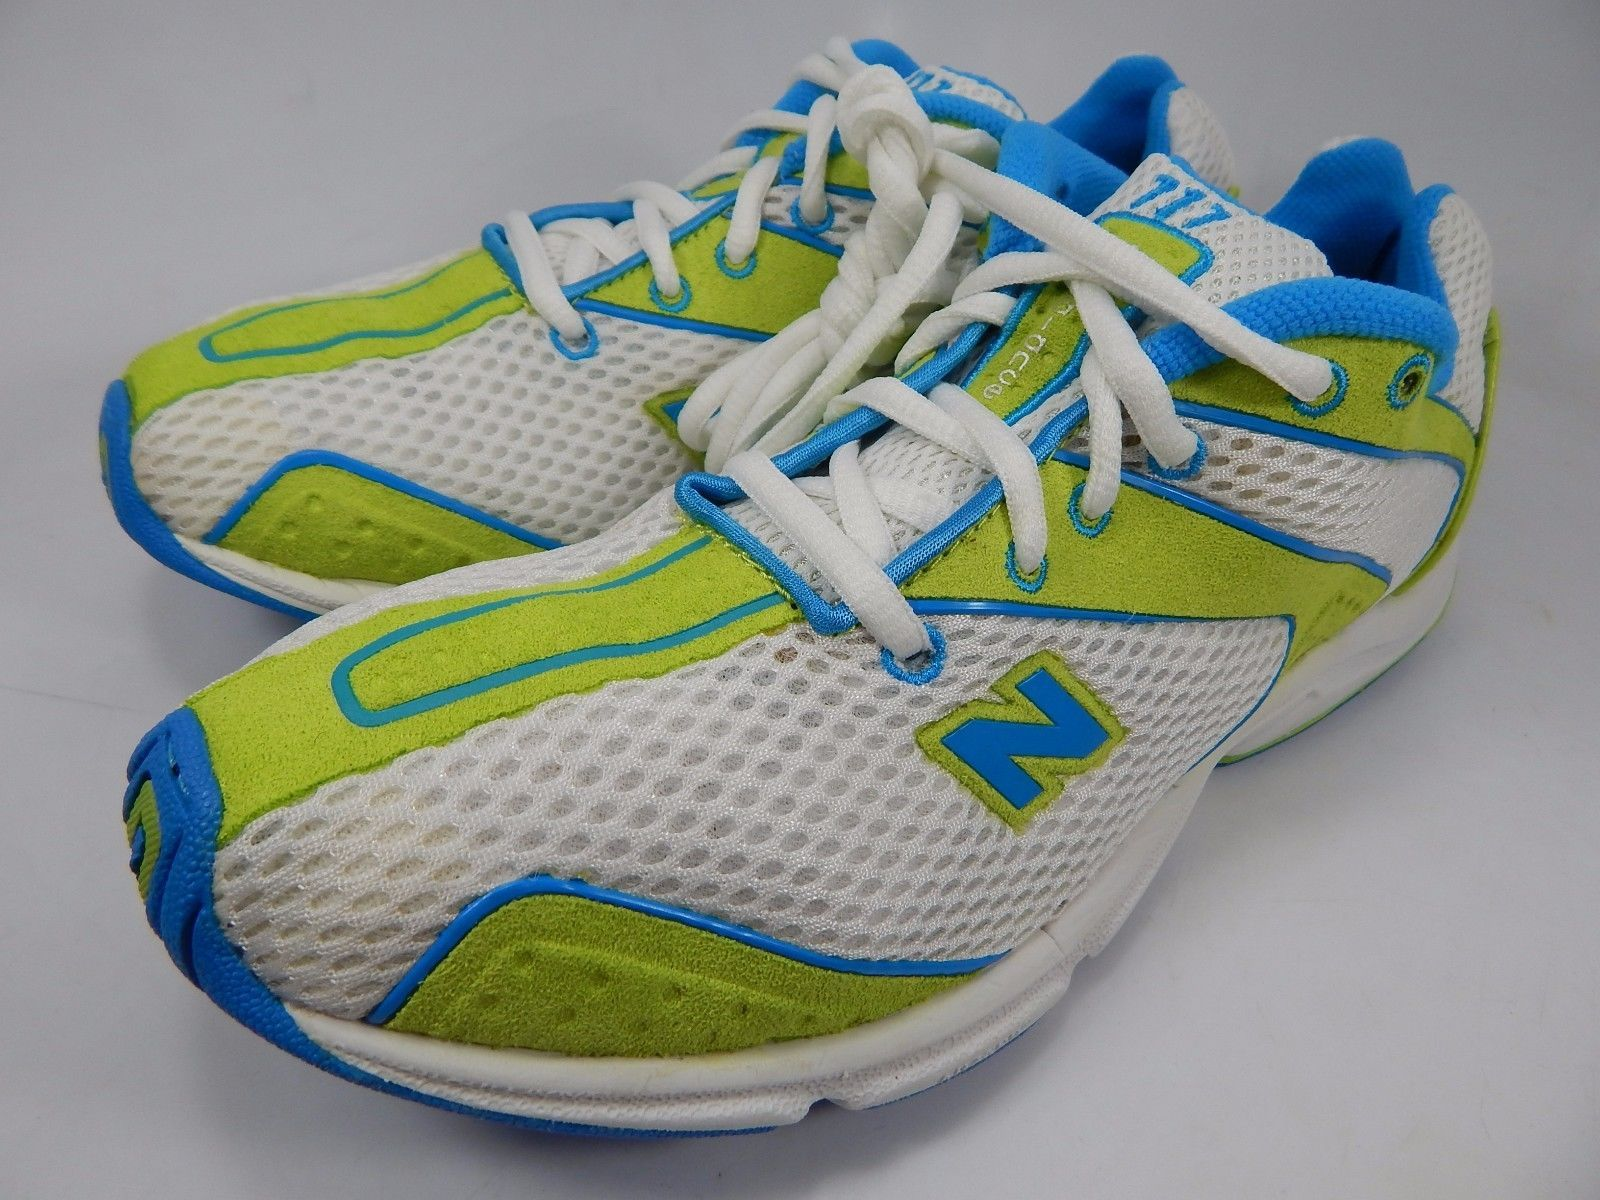 New Balance 111 Women's Running Shoes Size US 9.5 M (B) EU 41 White WRW111G